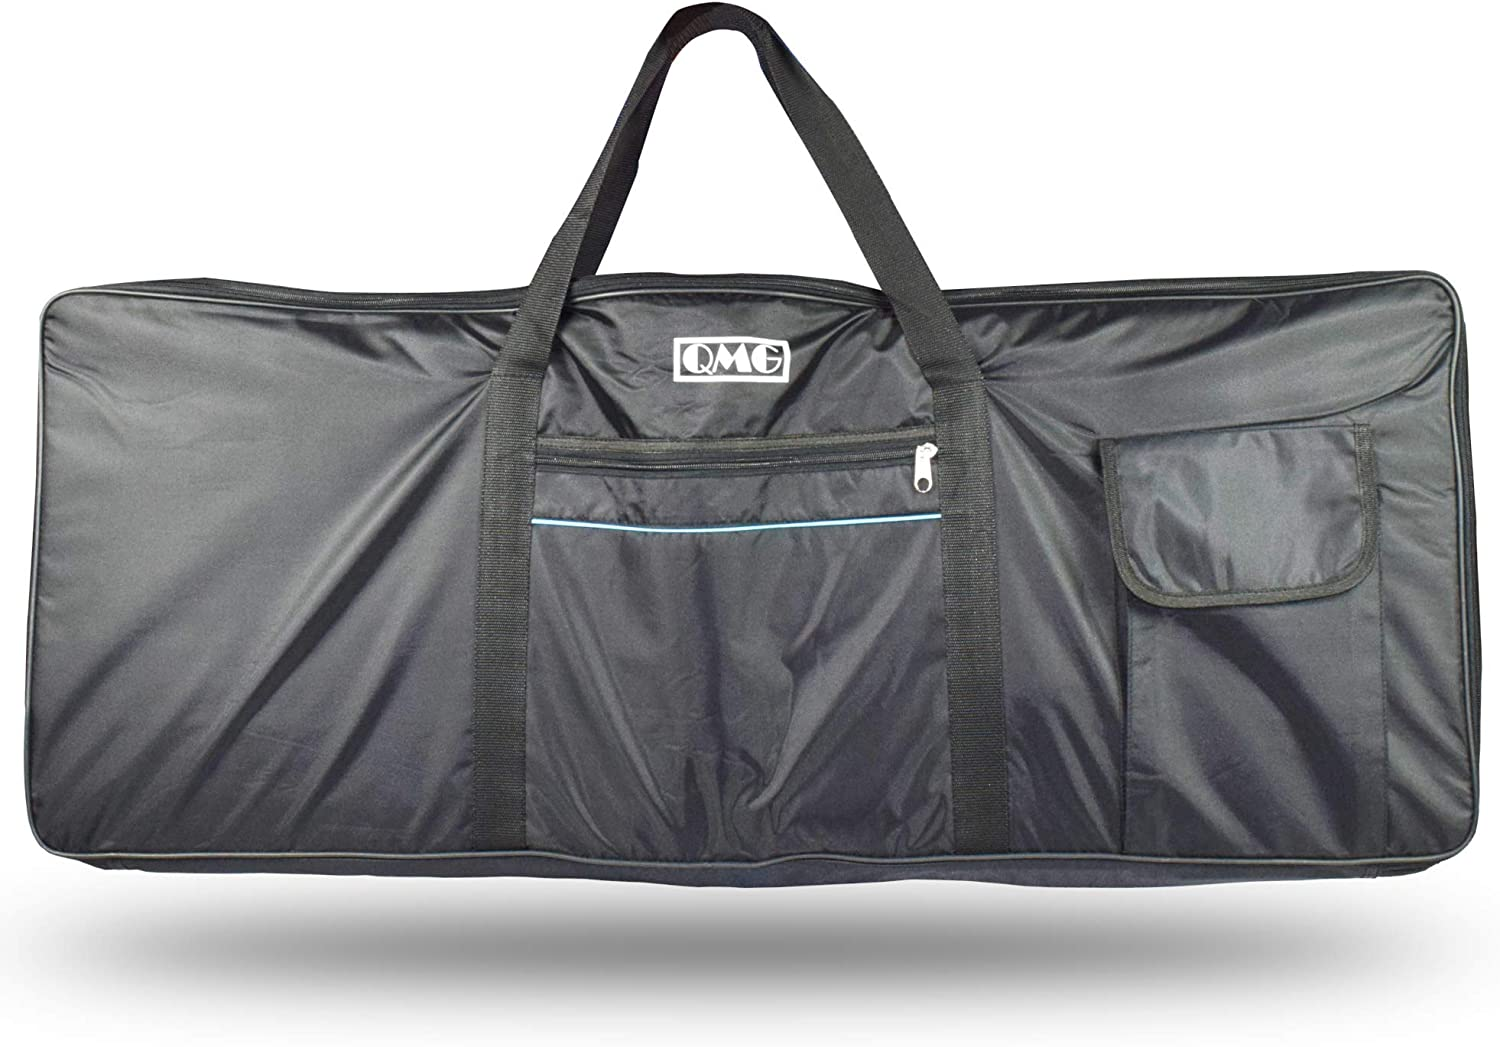 QMG Electric Piano Portable Padded Gig Bag We OFFer at cheap depot prices Keybo 61 Case Key for